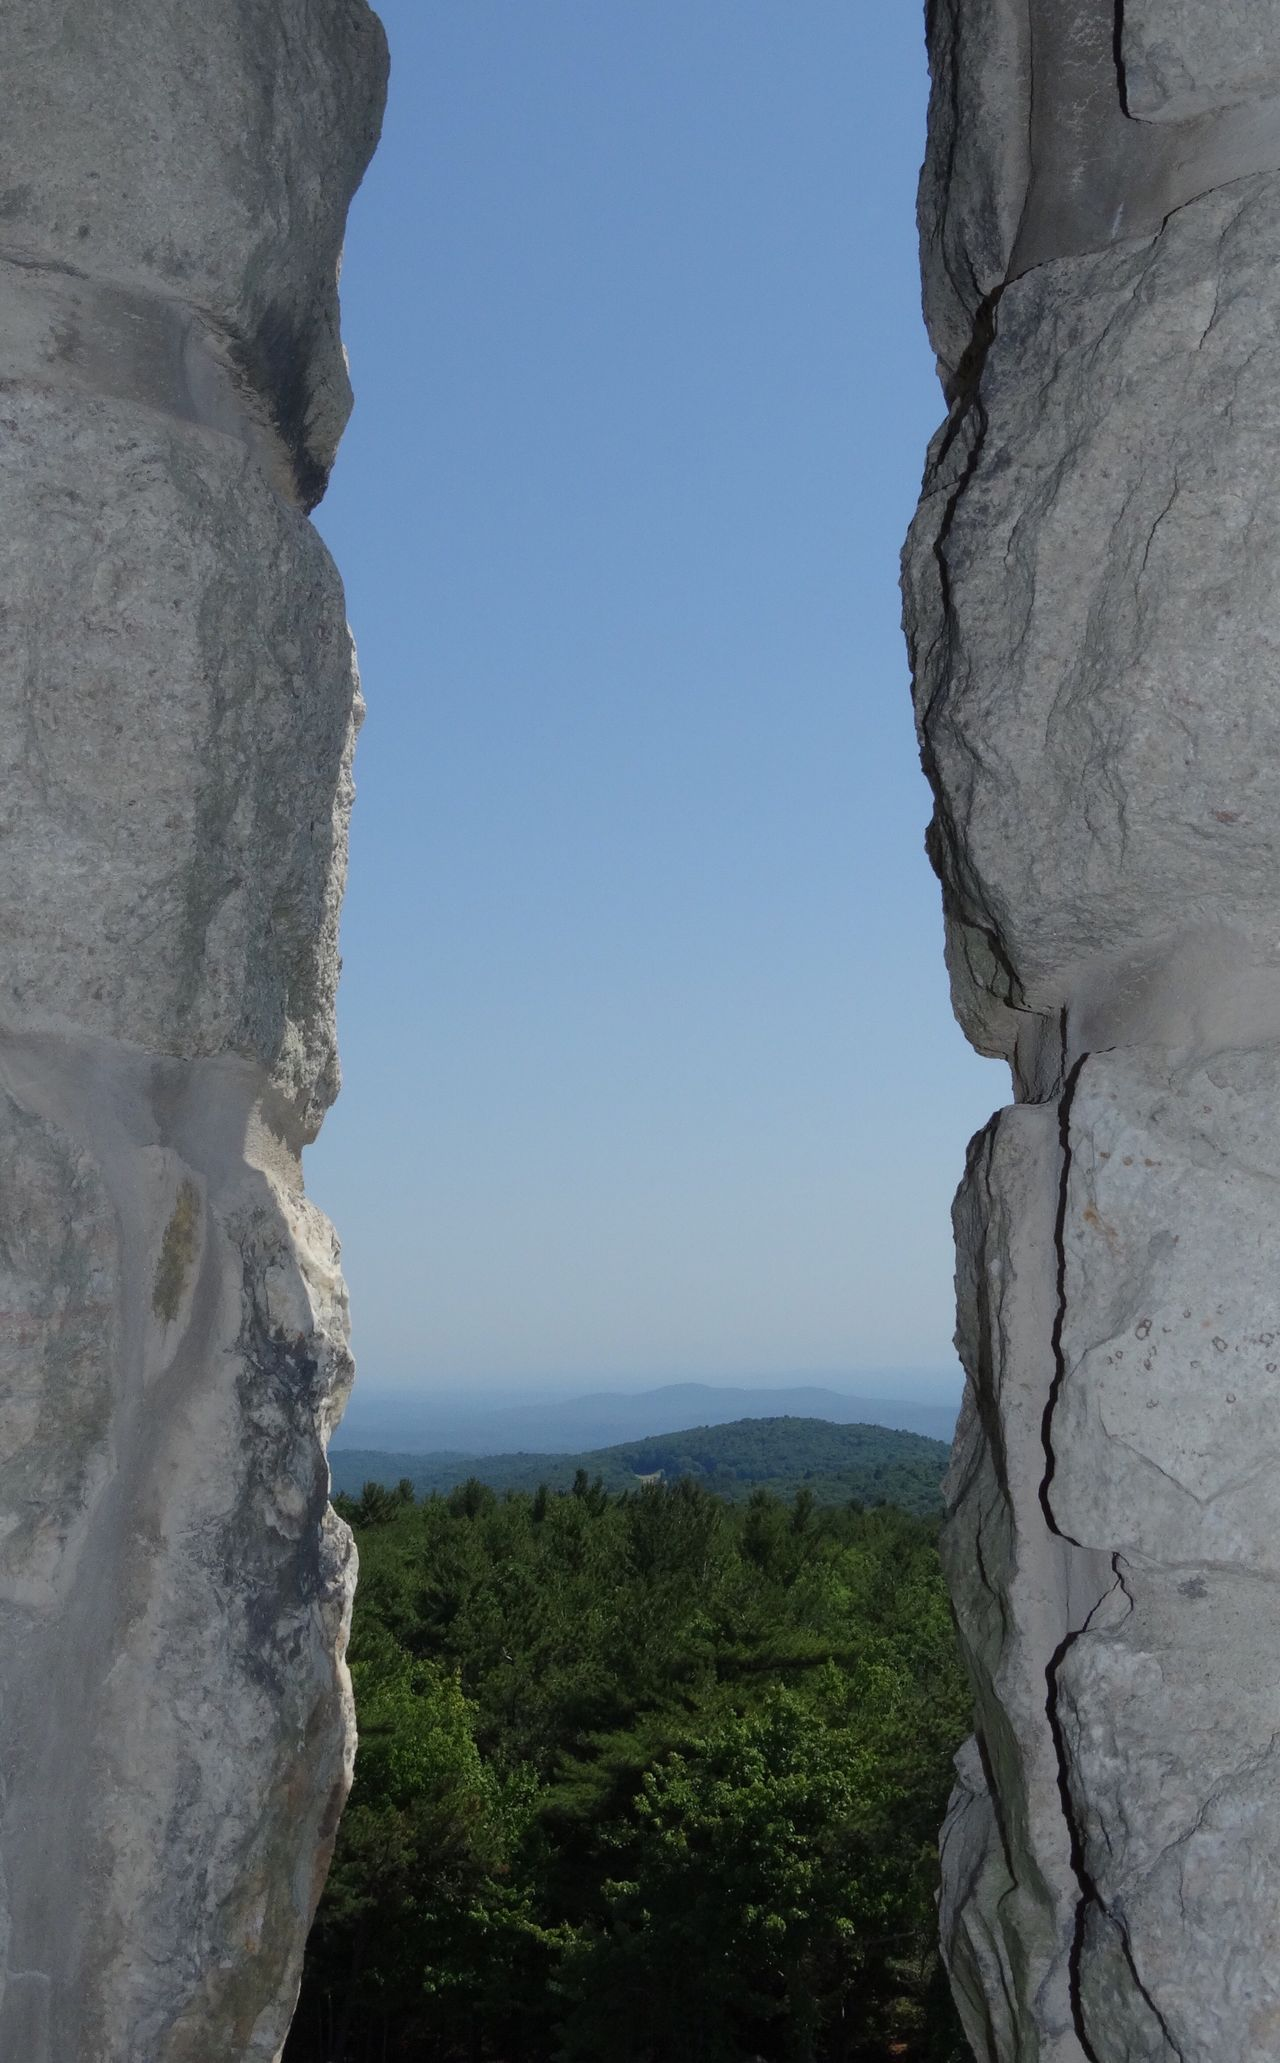 Look through the window and see. Nature Beauty In Nature Day Tranquil Scene Tranquility Geology Mountain Tree Rock - Object Outdoors Scenics No People Landscape Sky Mohonk Preserve